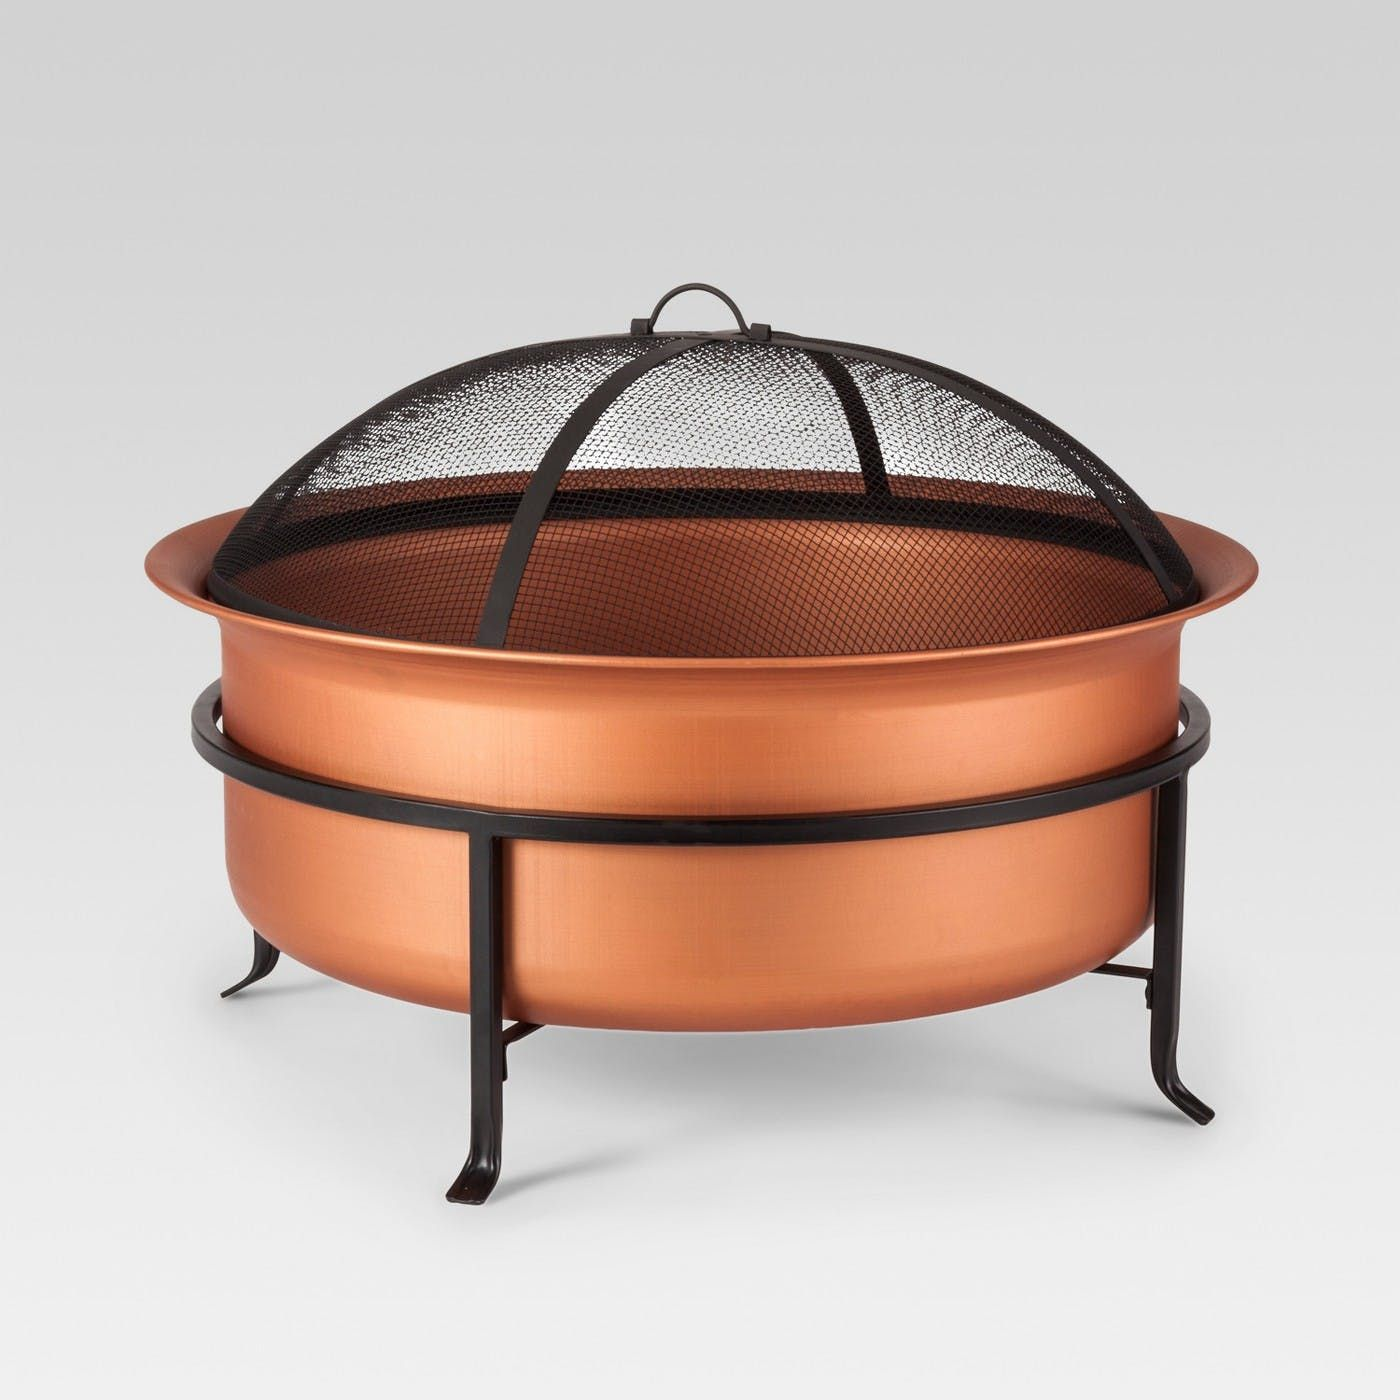 23 Backyard Glamping Essentials For The Ultimate Ladies Night Copper Fire Pit Outdoor Fire Pit Wood Burning Fire Pit